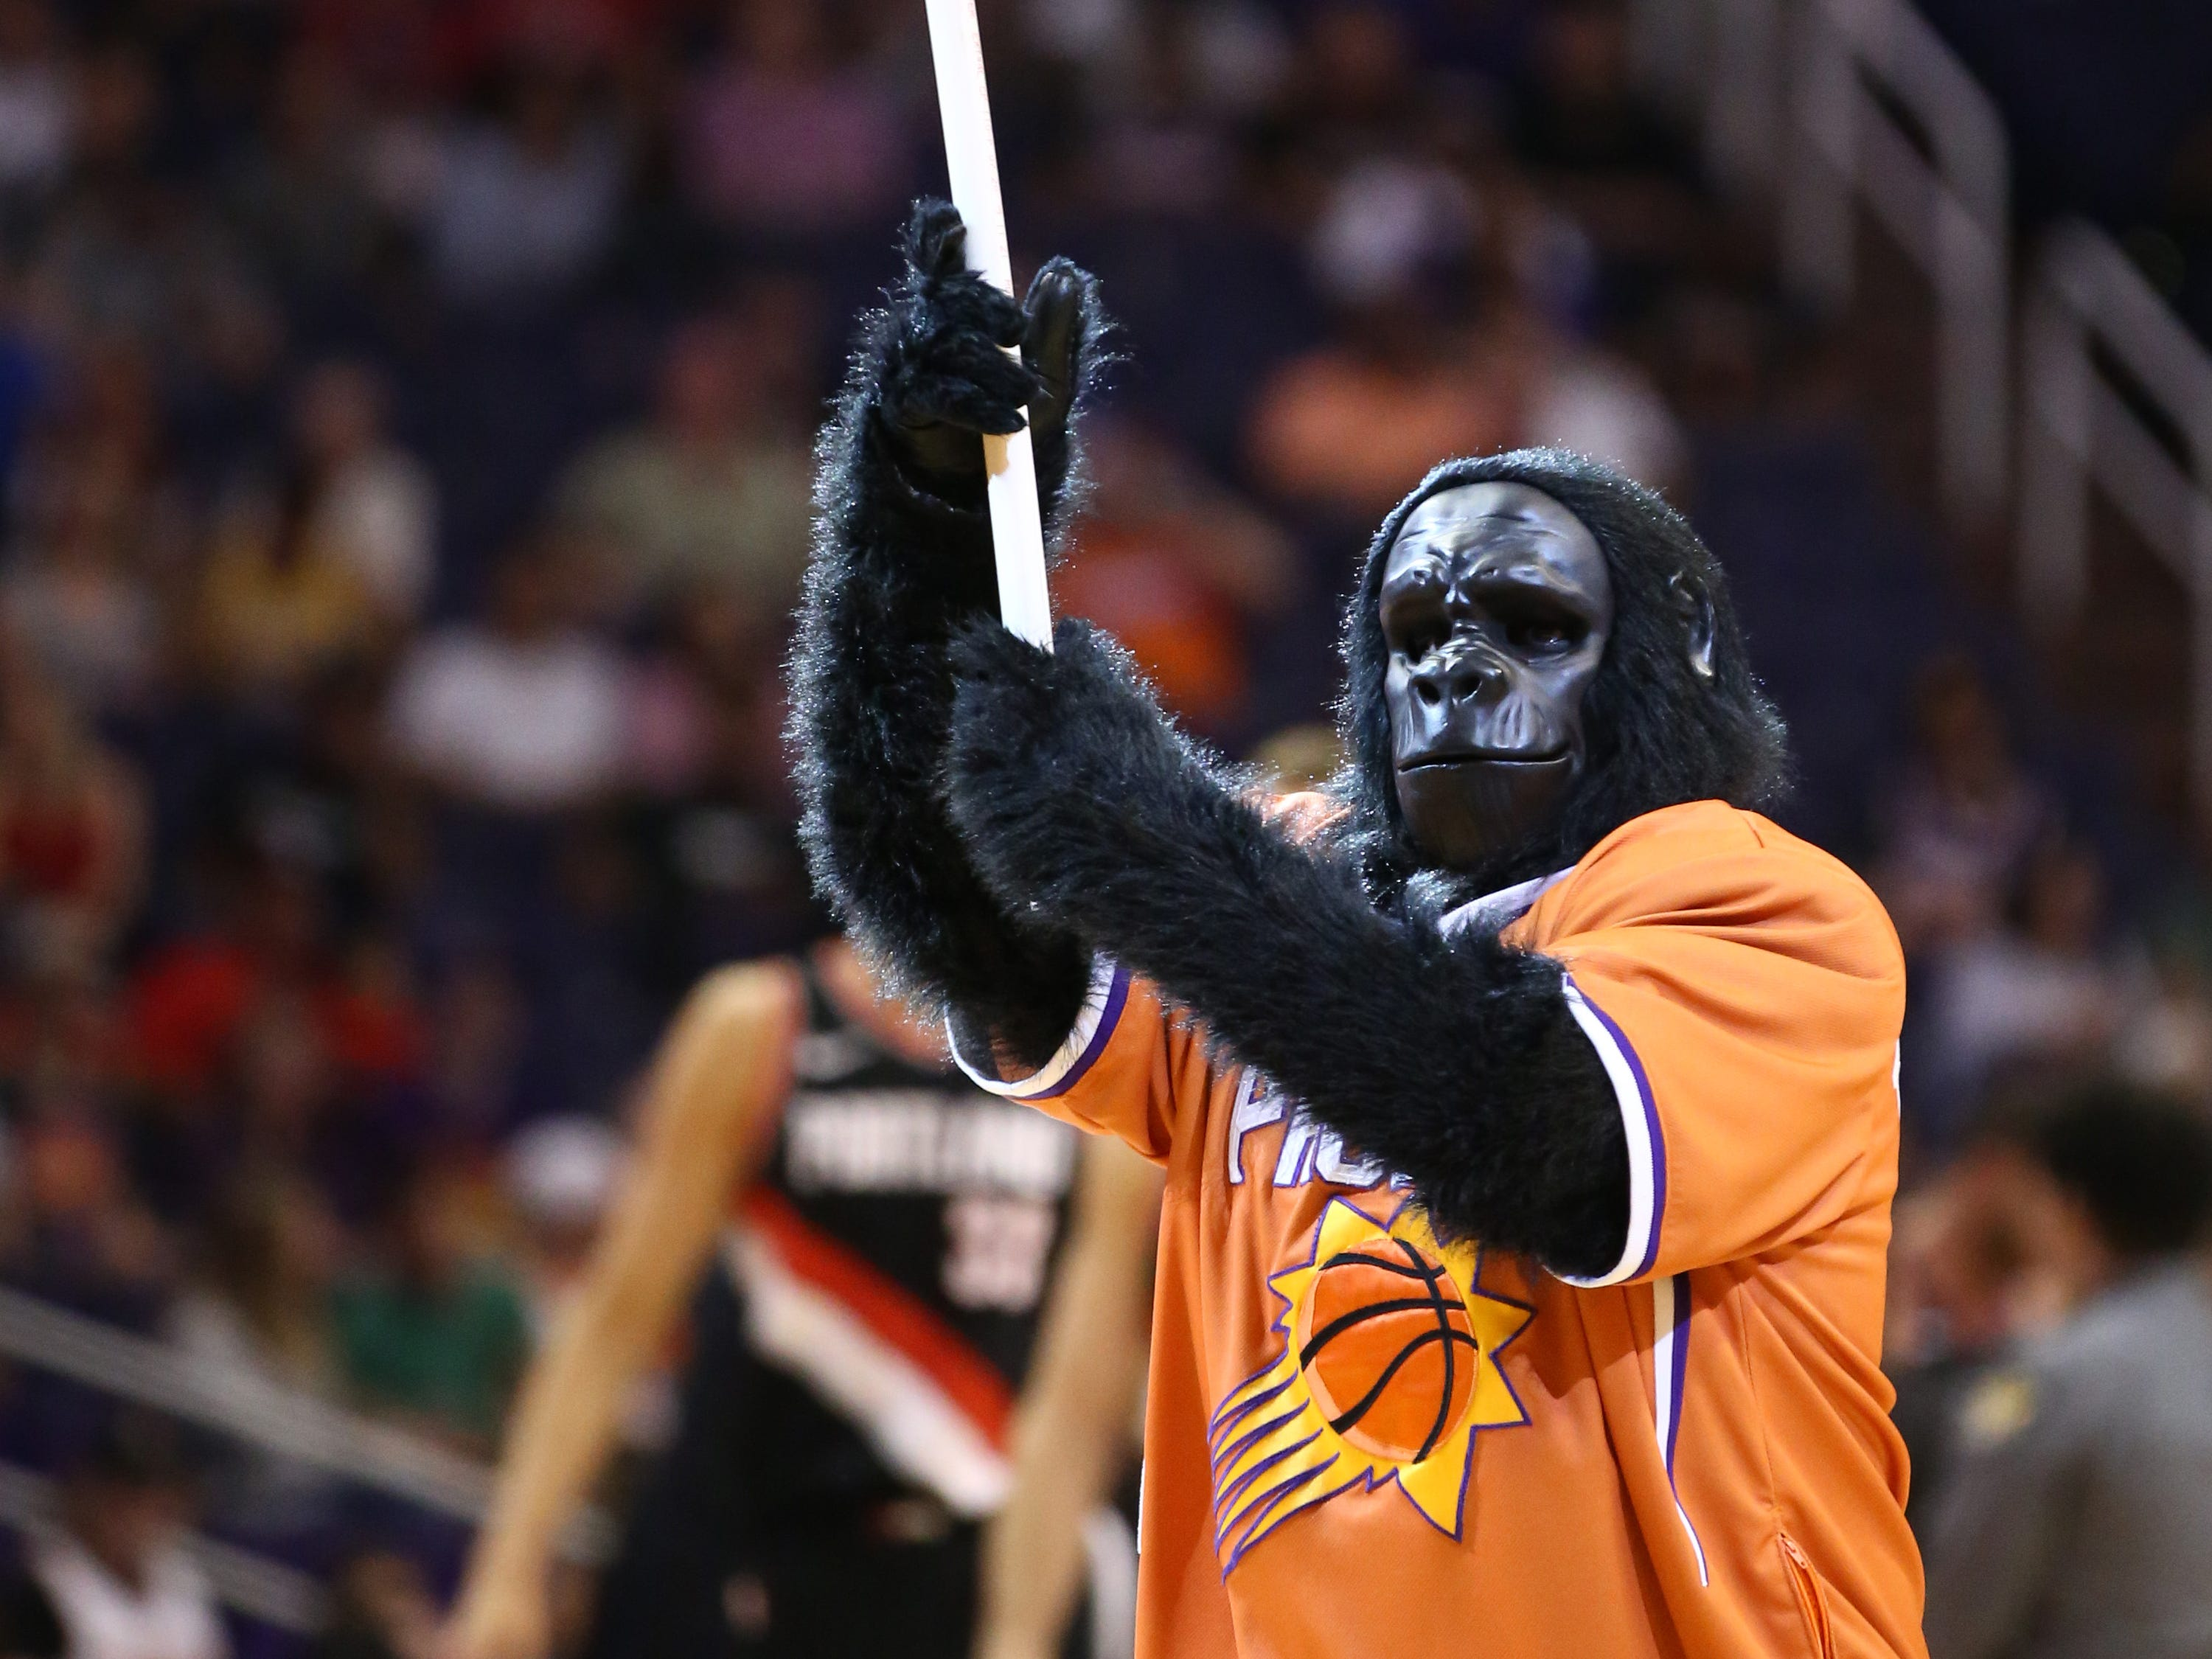 Phoenix Suns Gorilla works the crowd against the Portland Trail Blazers during a preseason game at Talking Stick Resort Arena on Oct. 5, 2018, in Phoenix, Ariz.